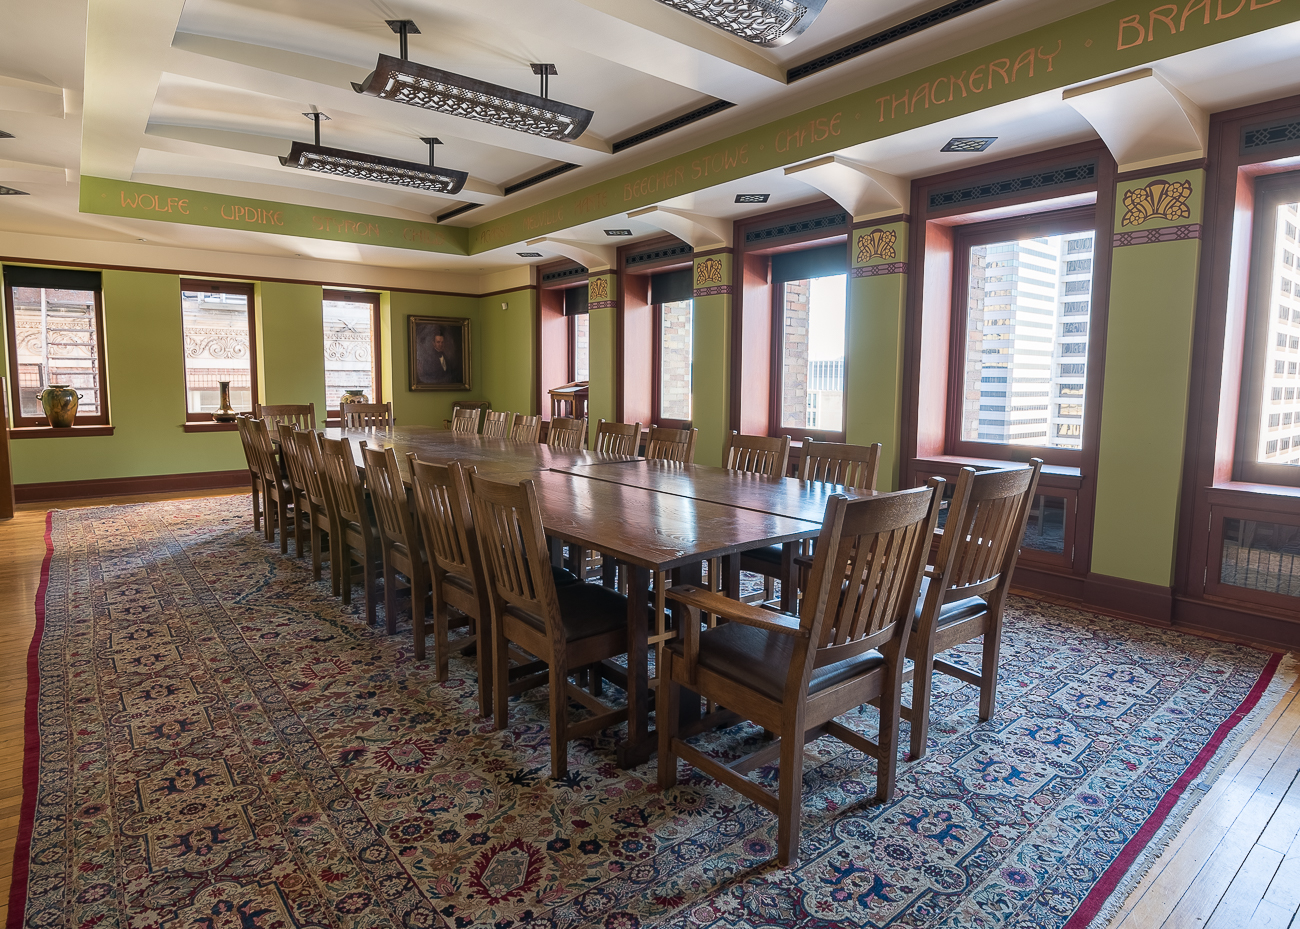 The lecture room on the 12th floor was renovated and reopened in April of 2000. The renovation cost $250,000 and also reconnected floors 11 and 12 via the spiral staircase that had previously been blocked off years before. / Image: Phil Armstrong, Cincinnati Refined // Published: 2.7.18<p></p>